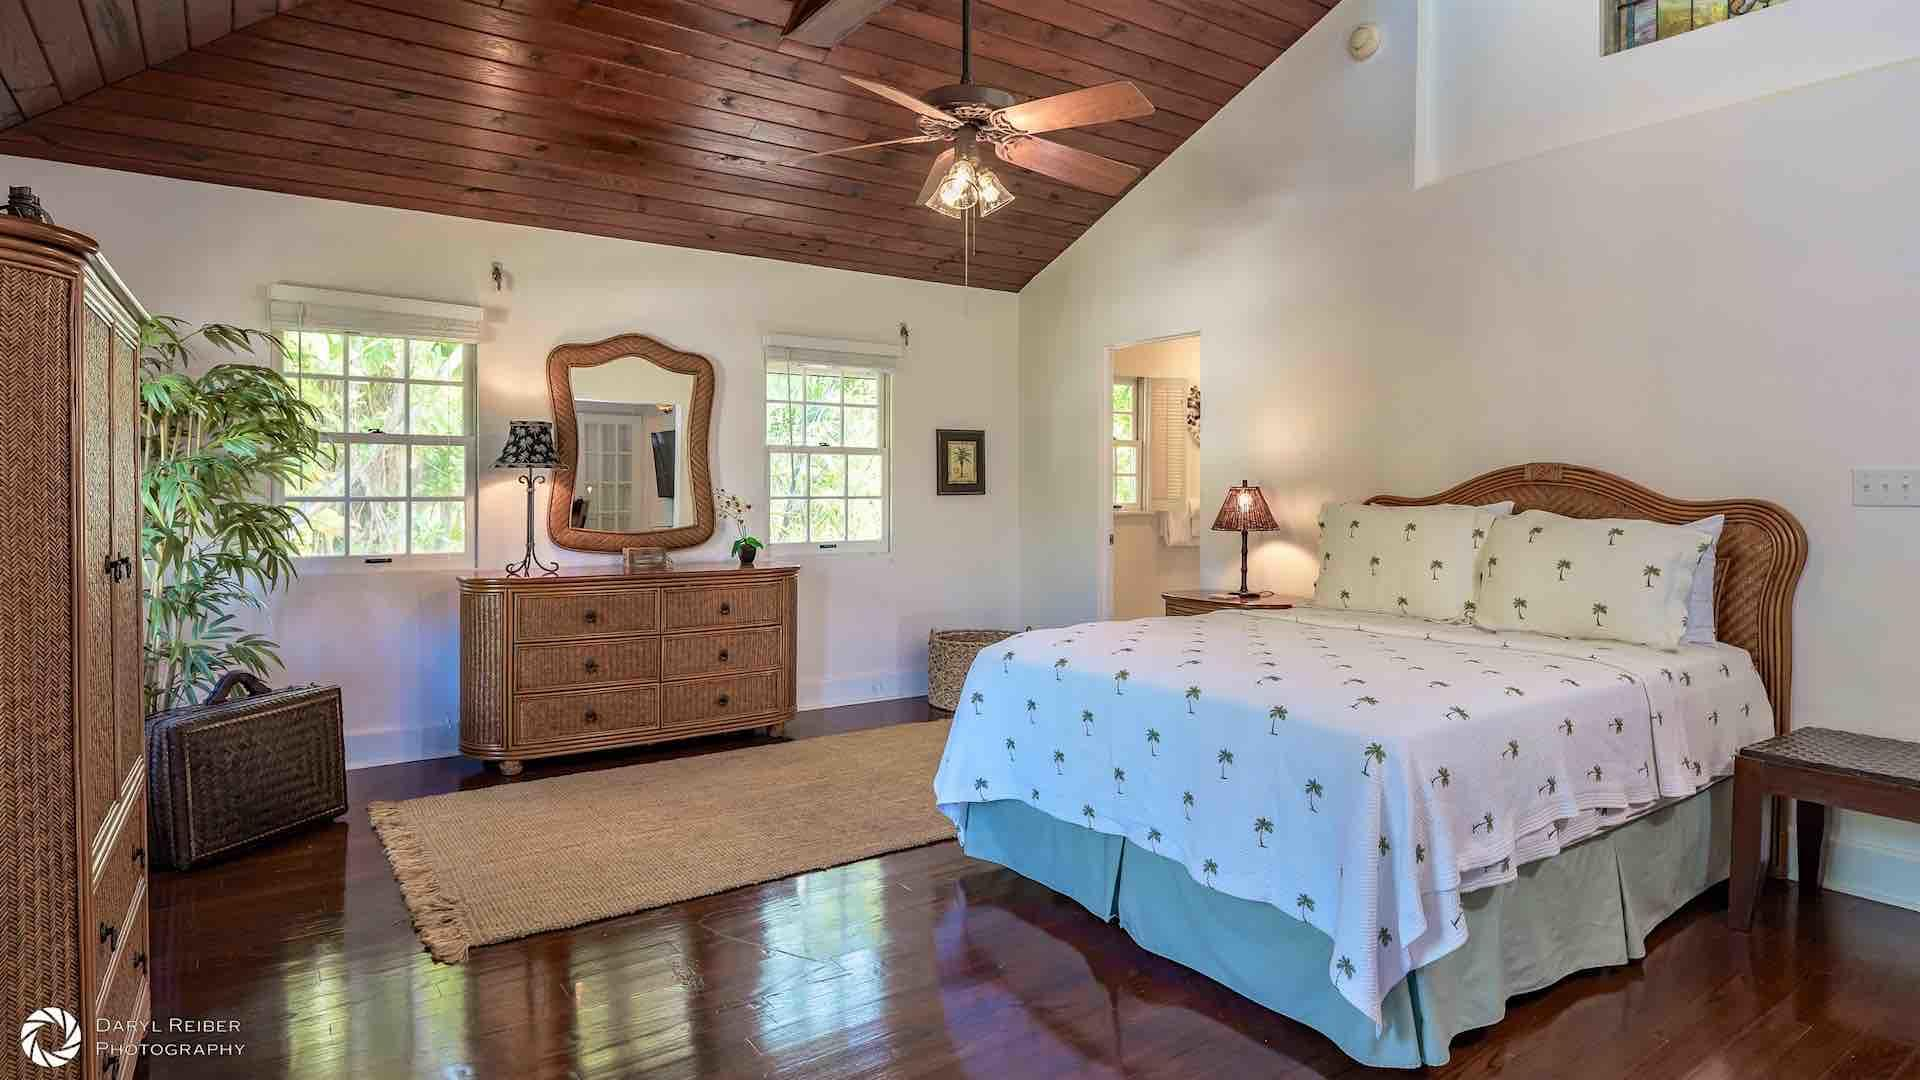 The third bedroom has a Queen bed and an overhead fan...